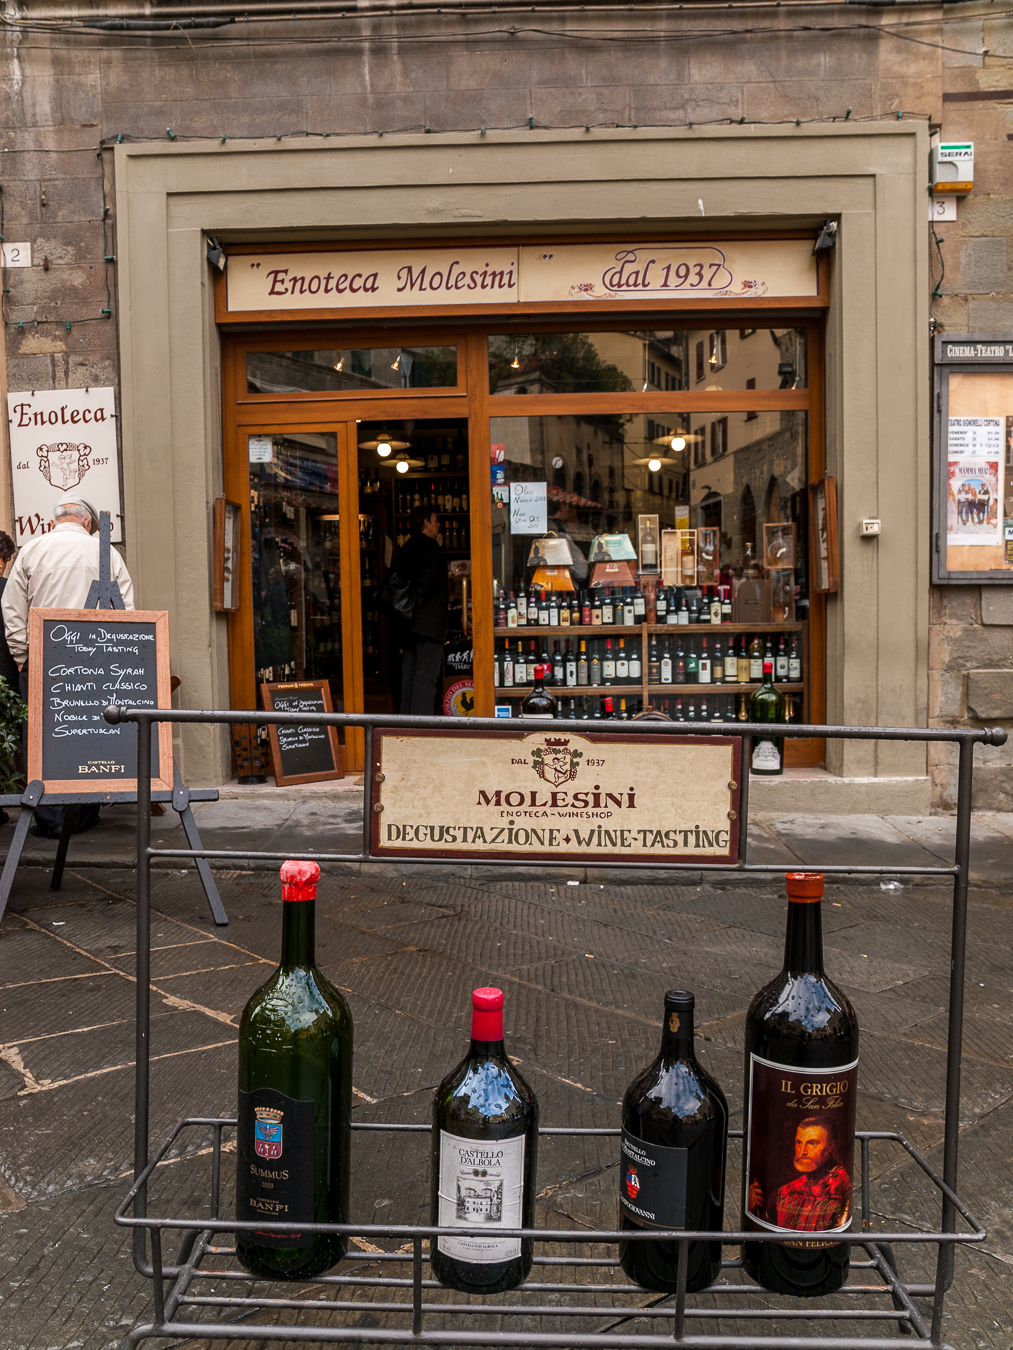 Brunellos on display in Montalcino.